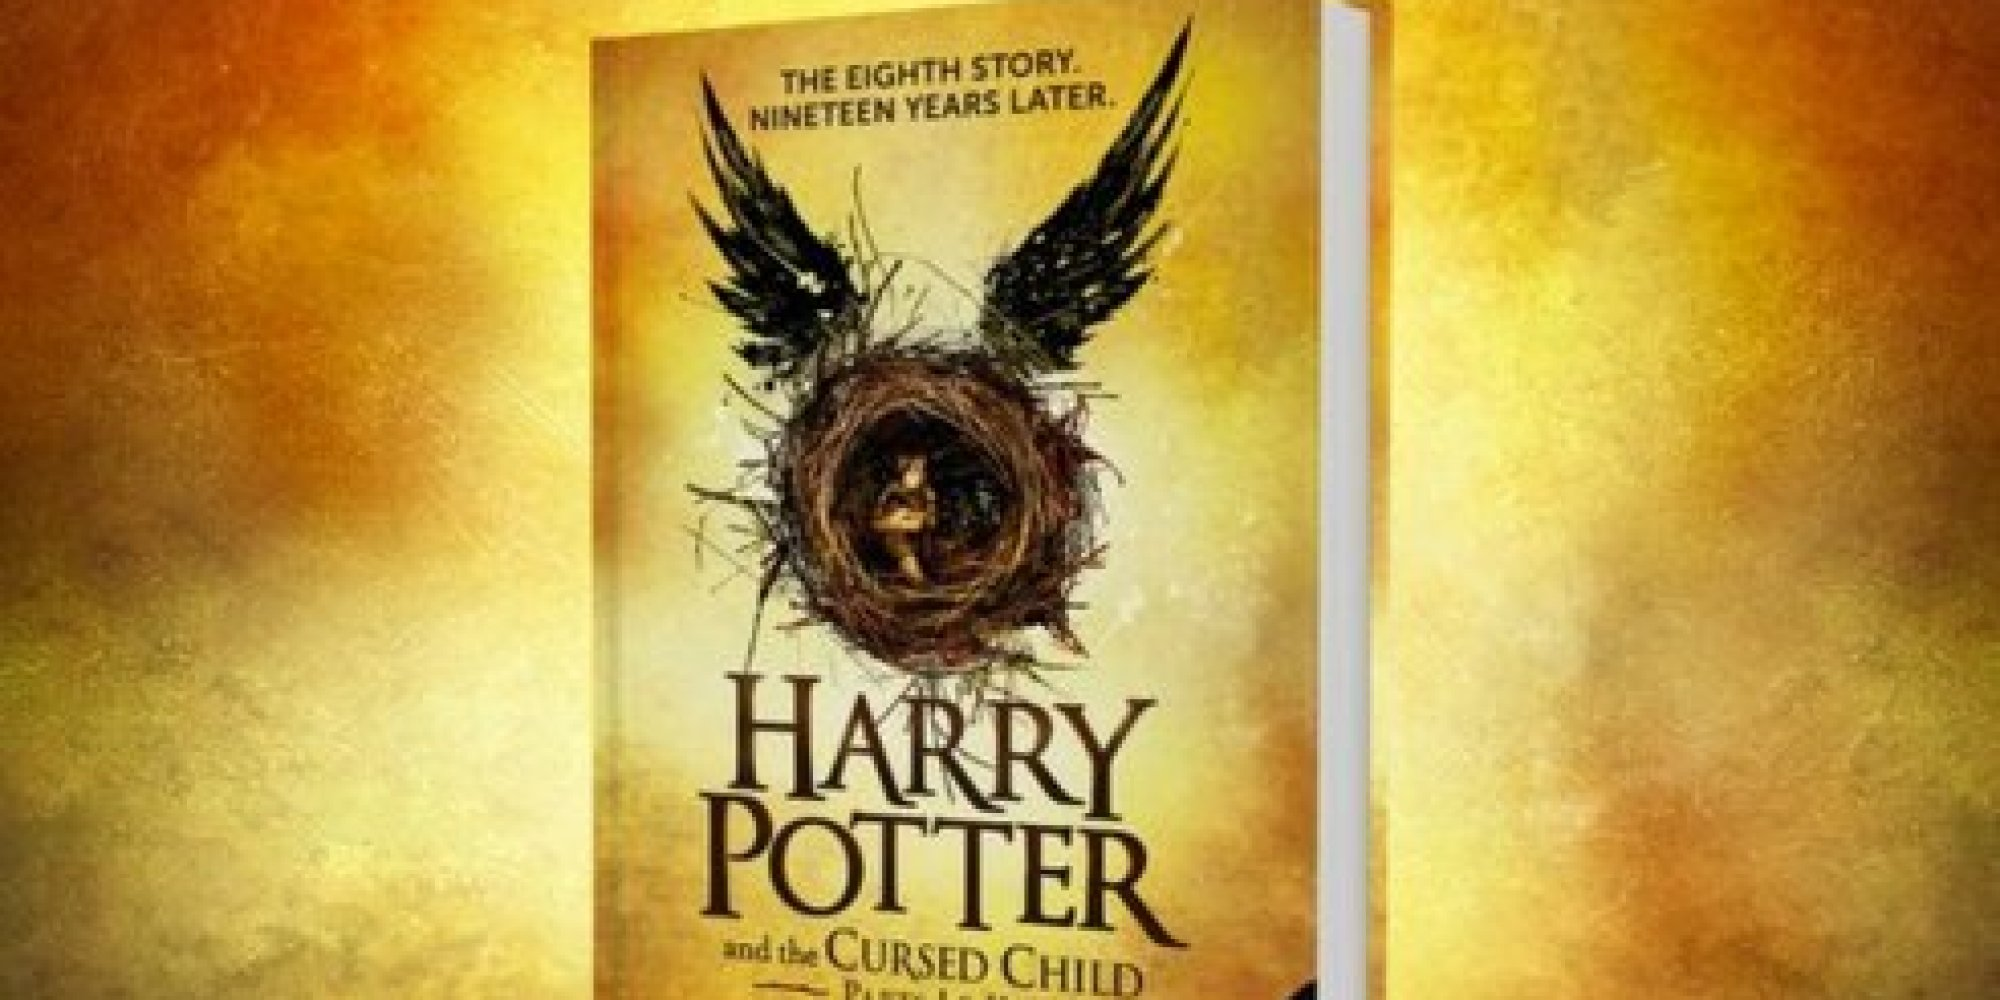 'Harry Potter' New Book: 'The Cursed Child' Play Script To ...